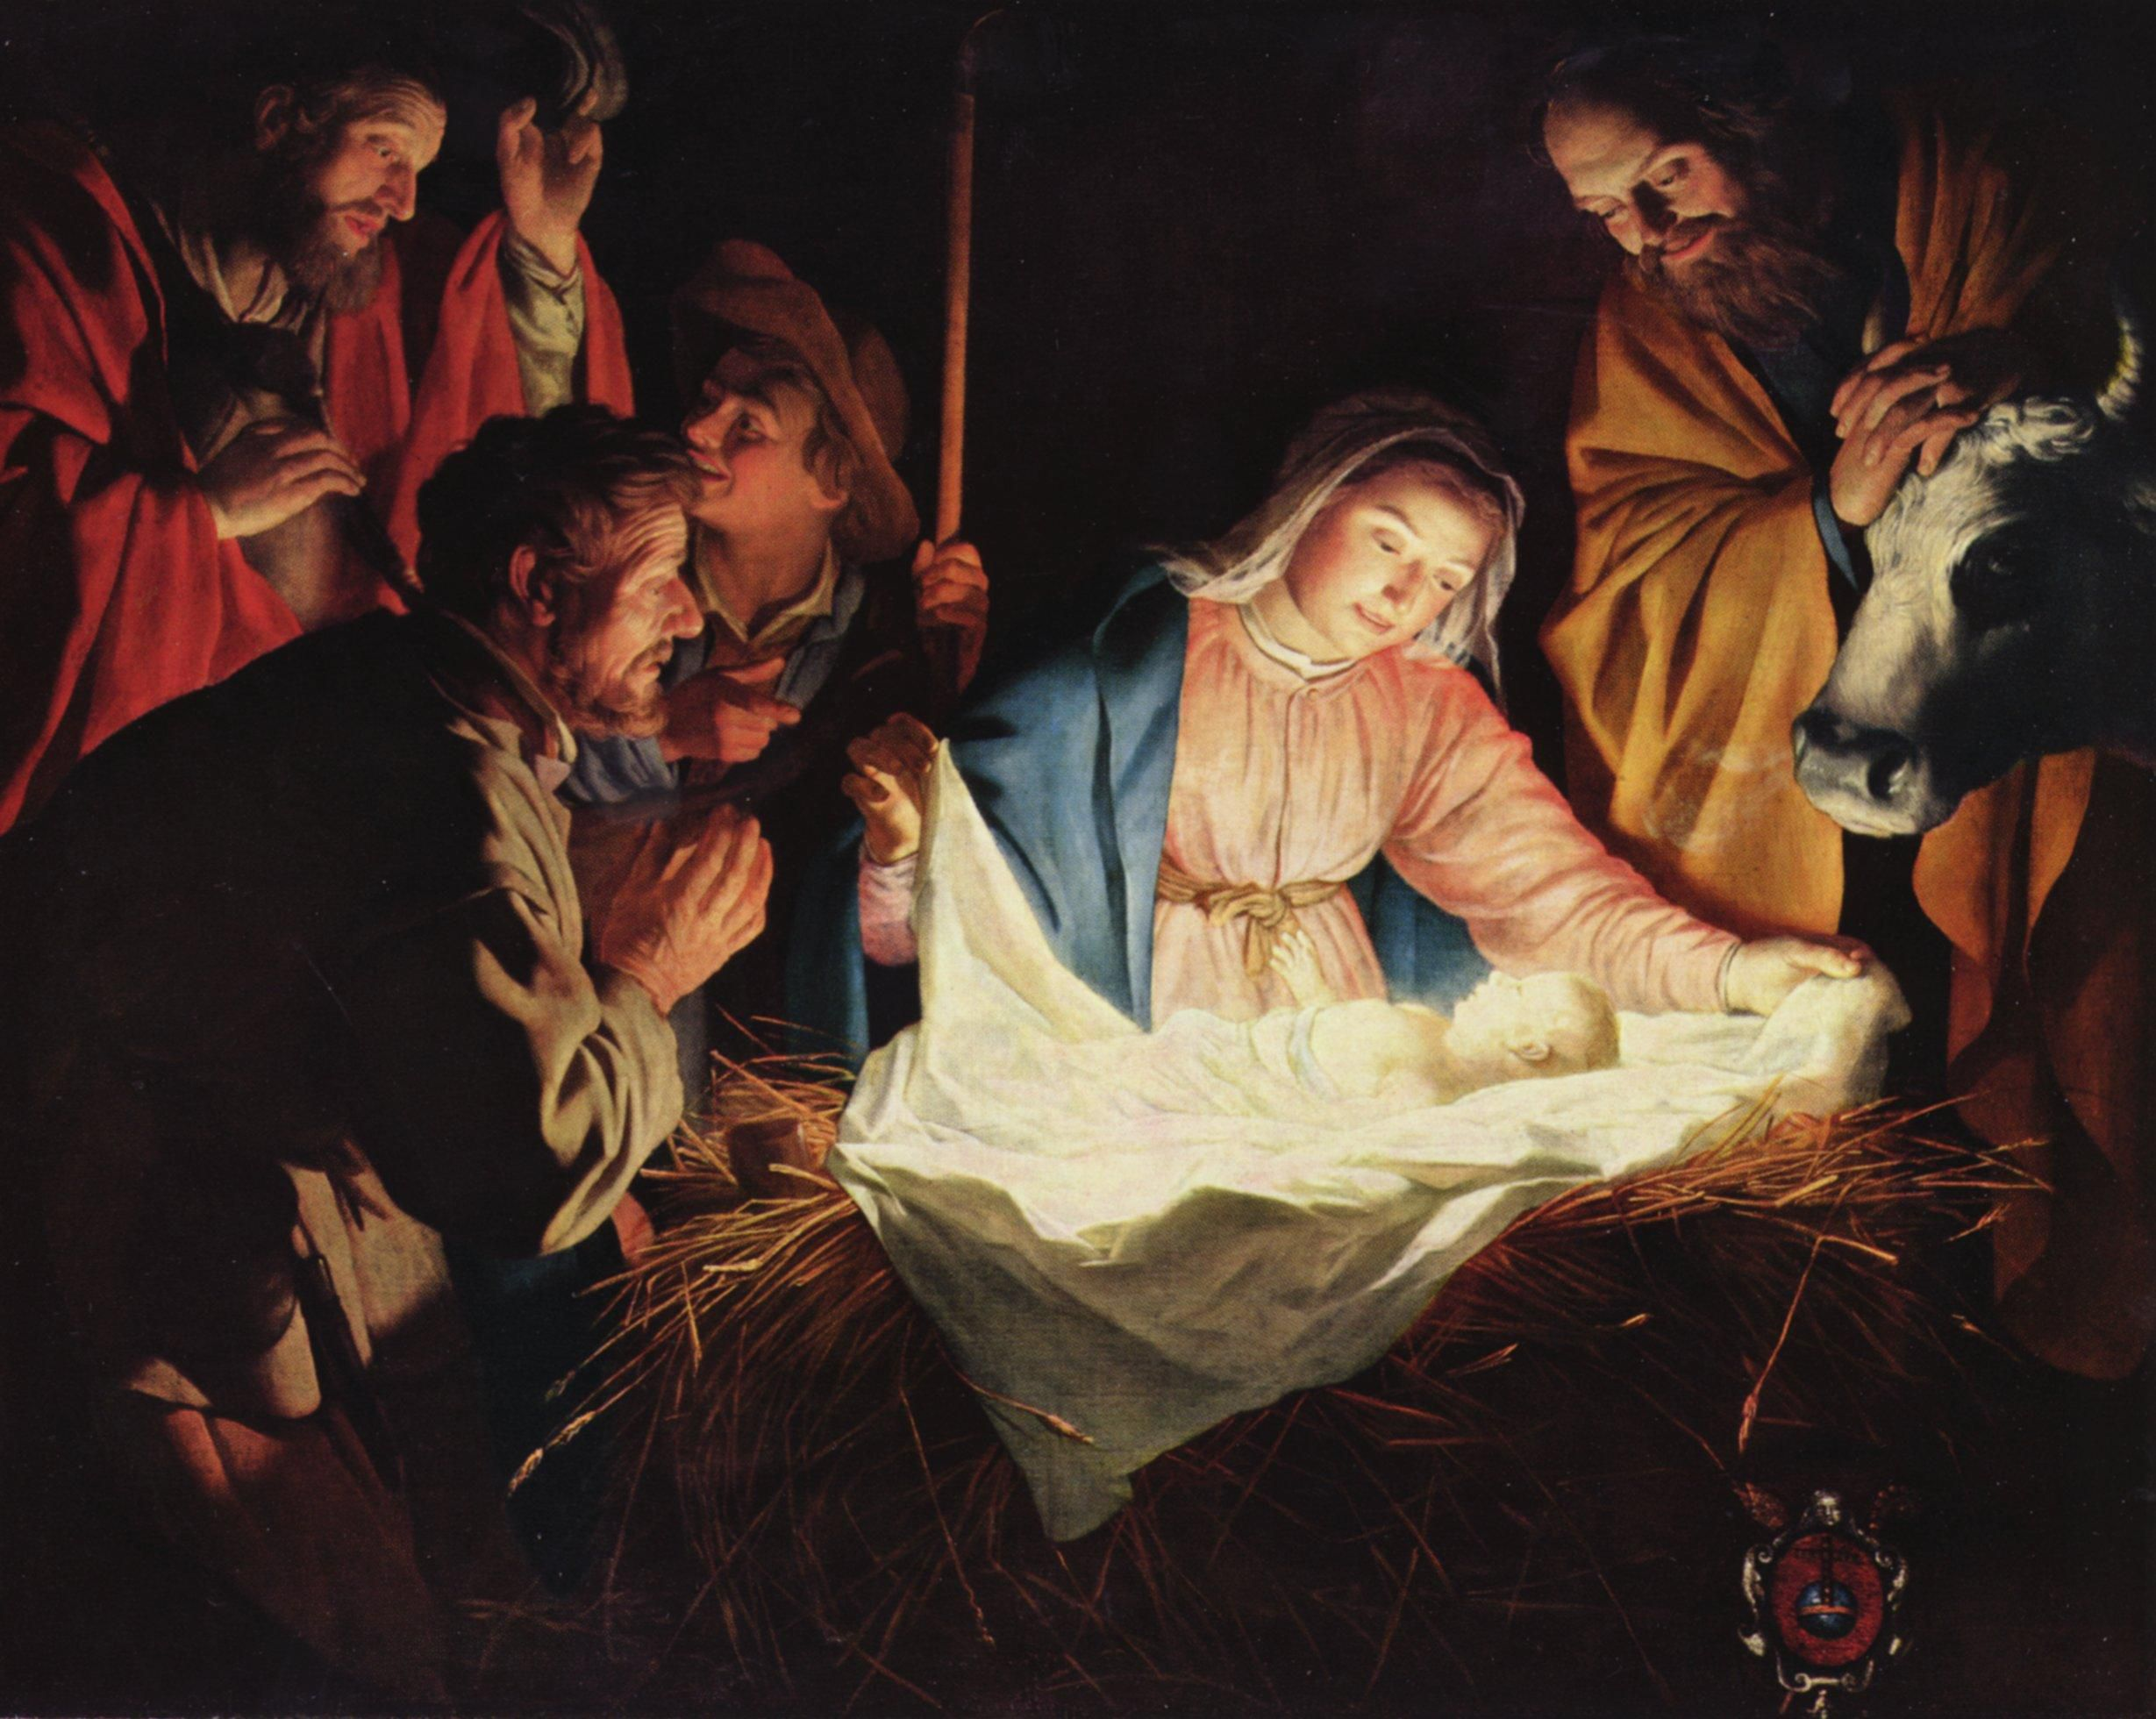 Christmas nativity scene painting honthorst.jpg